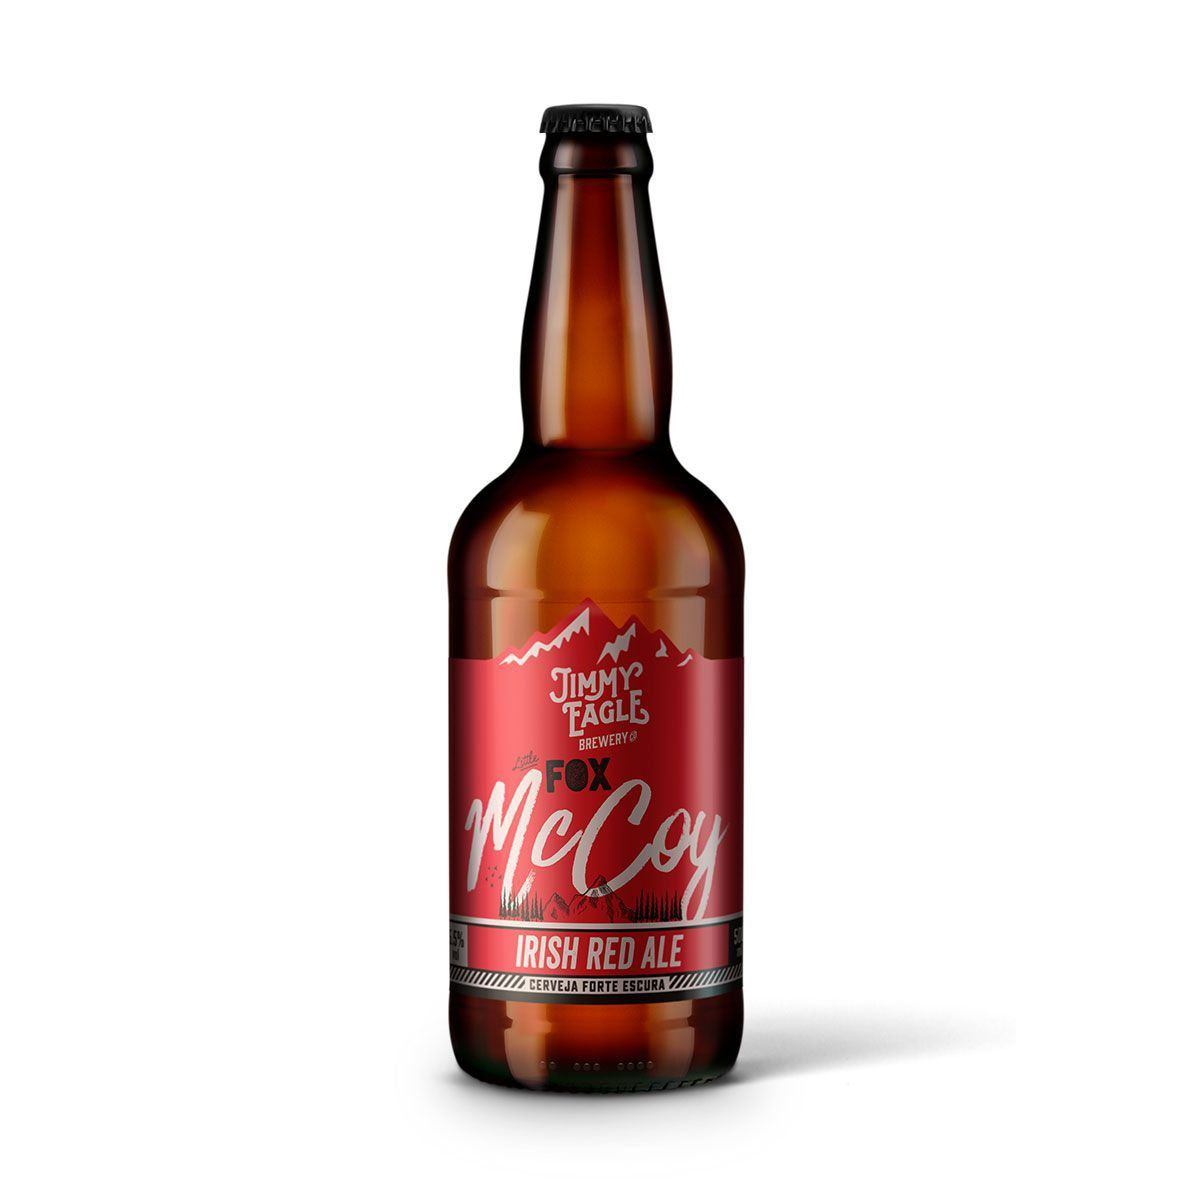 Jimmy Eagle Irish Red Ale Fox Mccoy 500ml